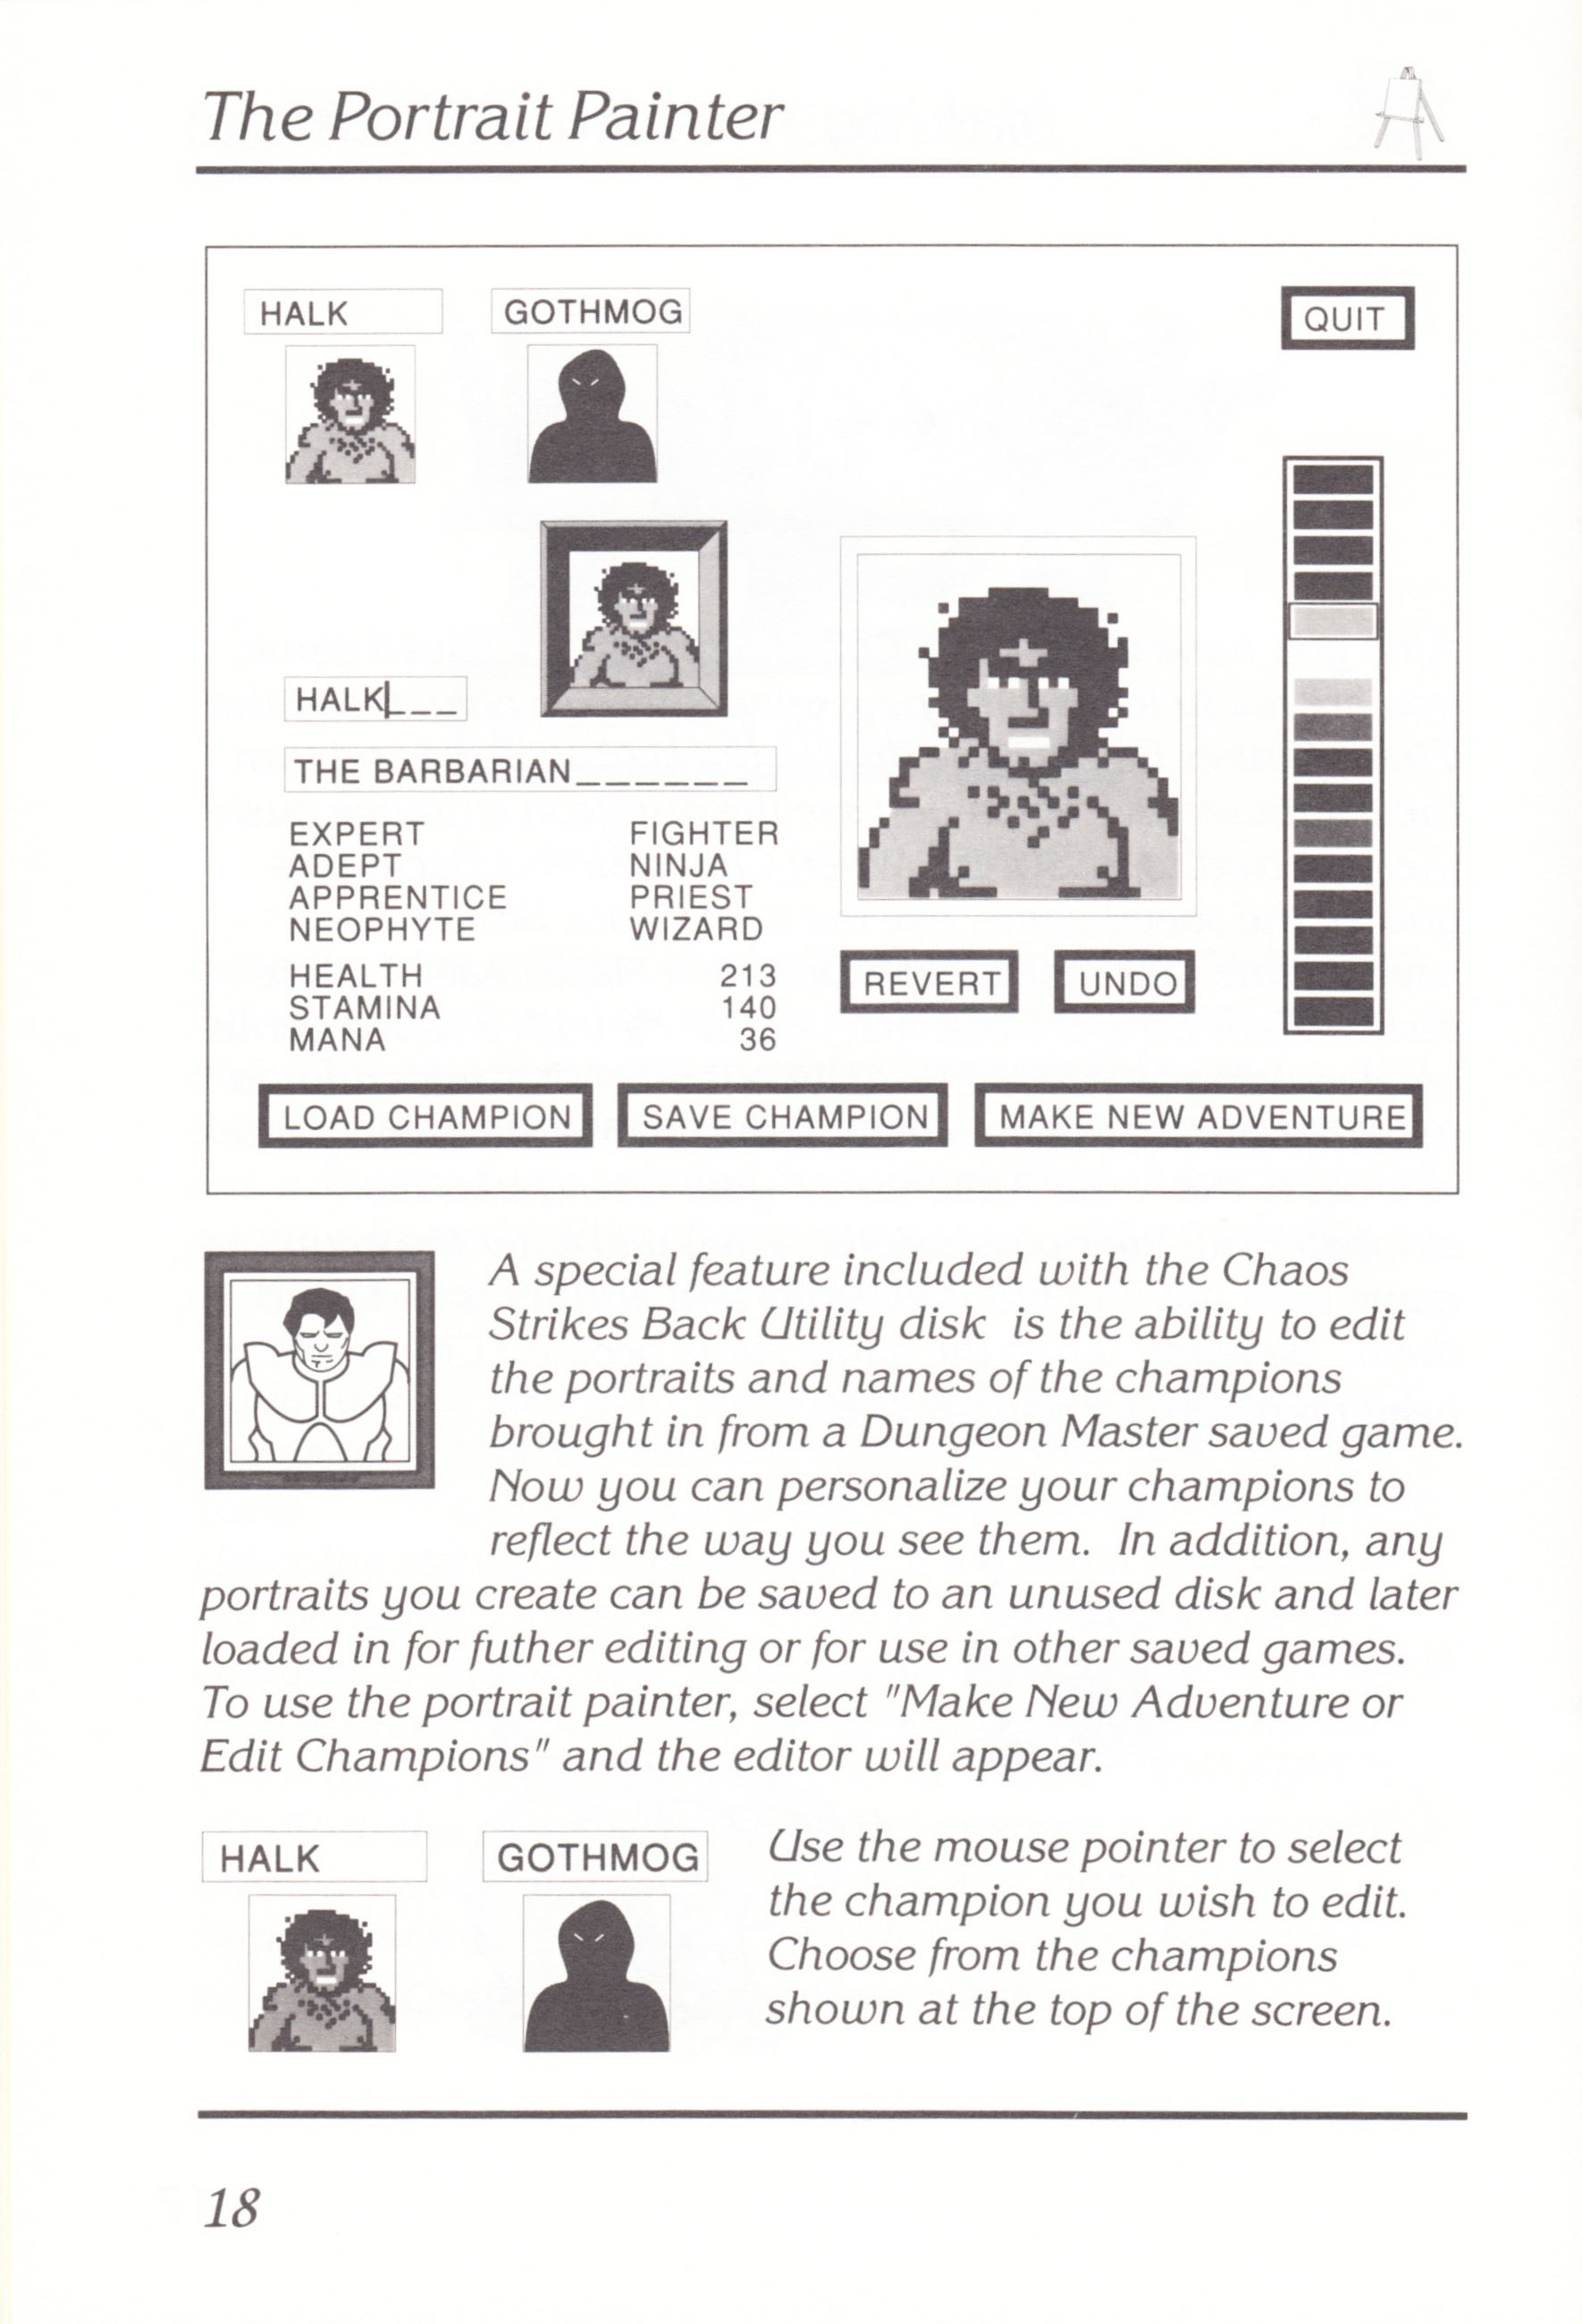 Game - Chaos Strikes Back - UK - Amiga - Manual - Page 020 - Scan